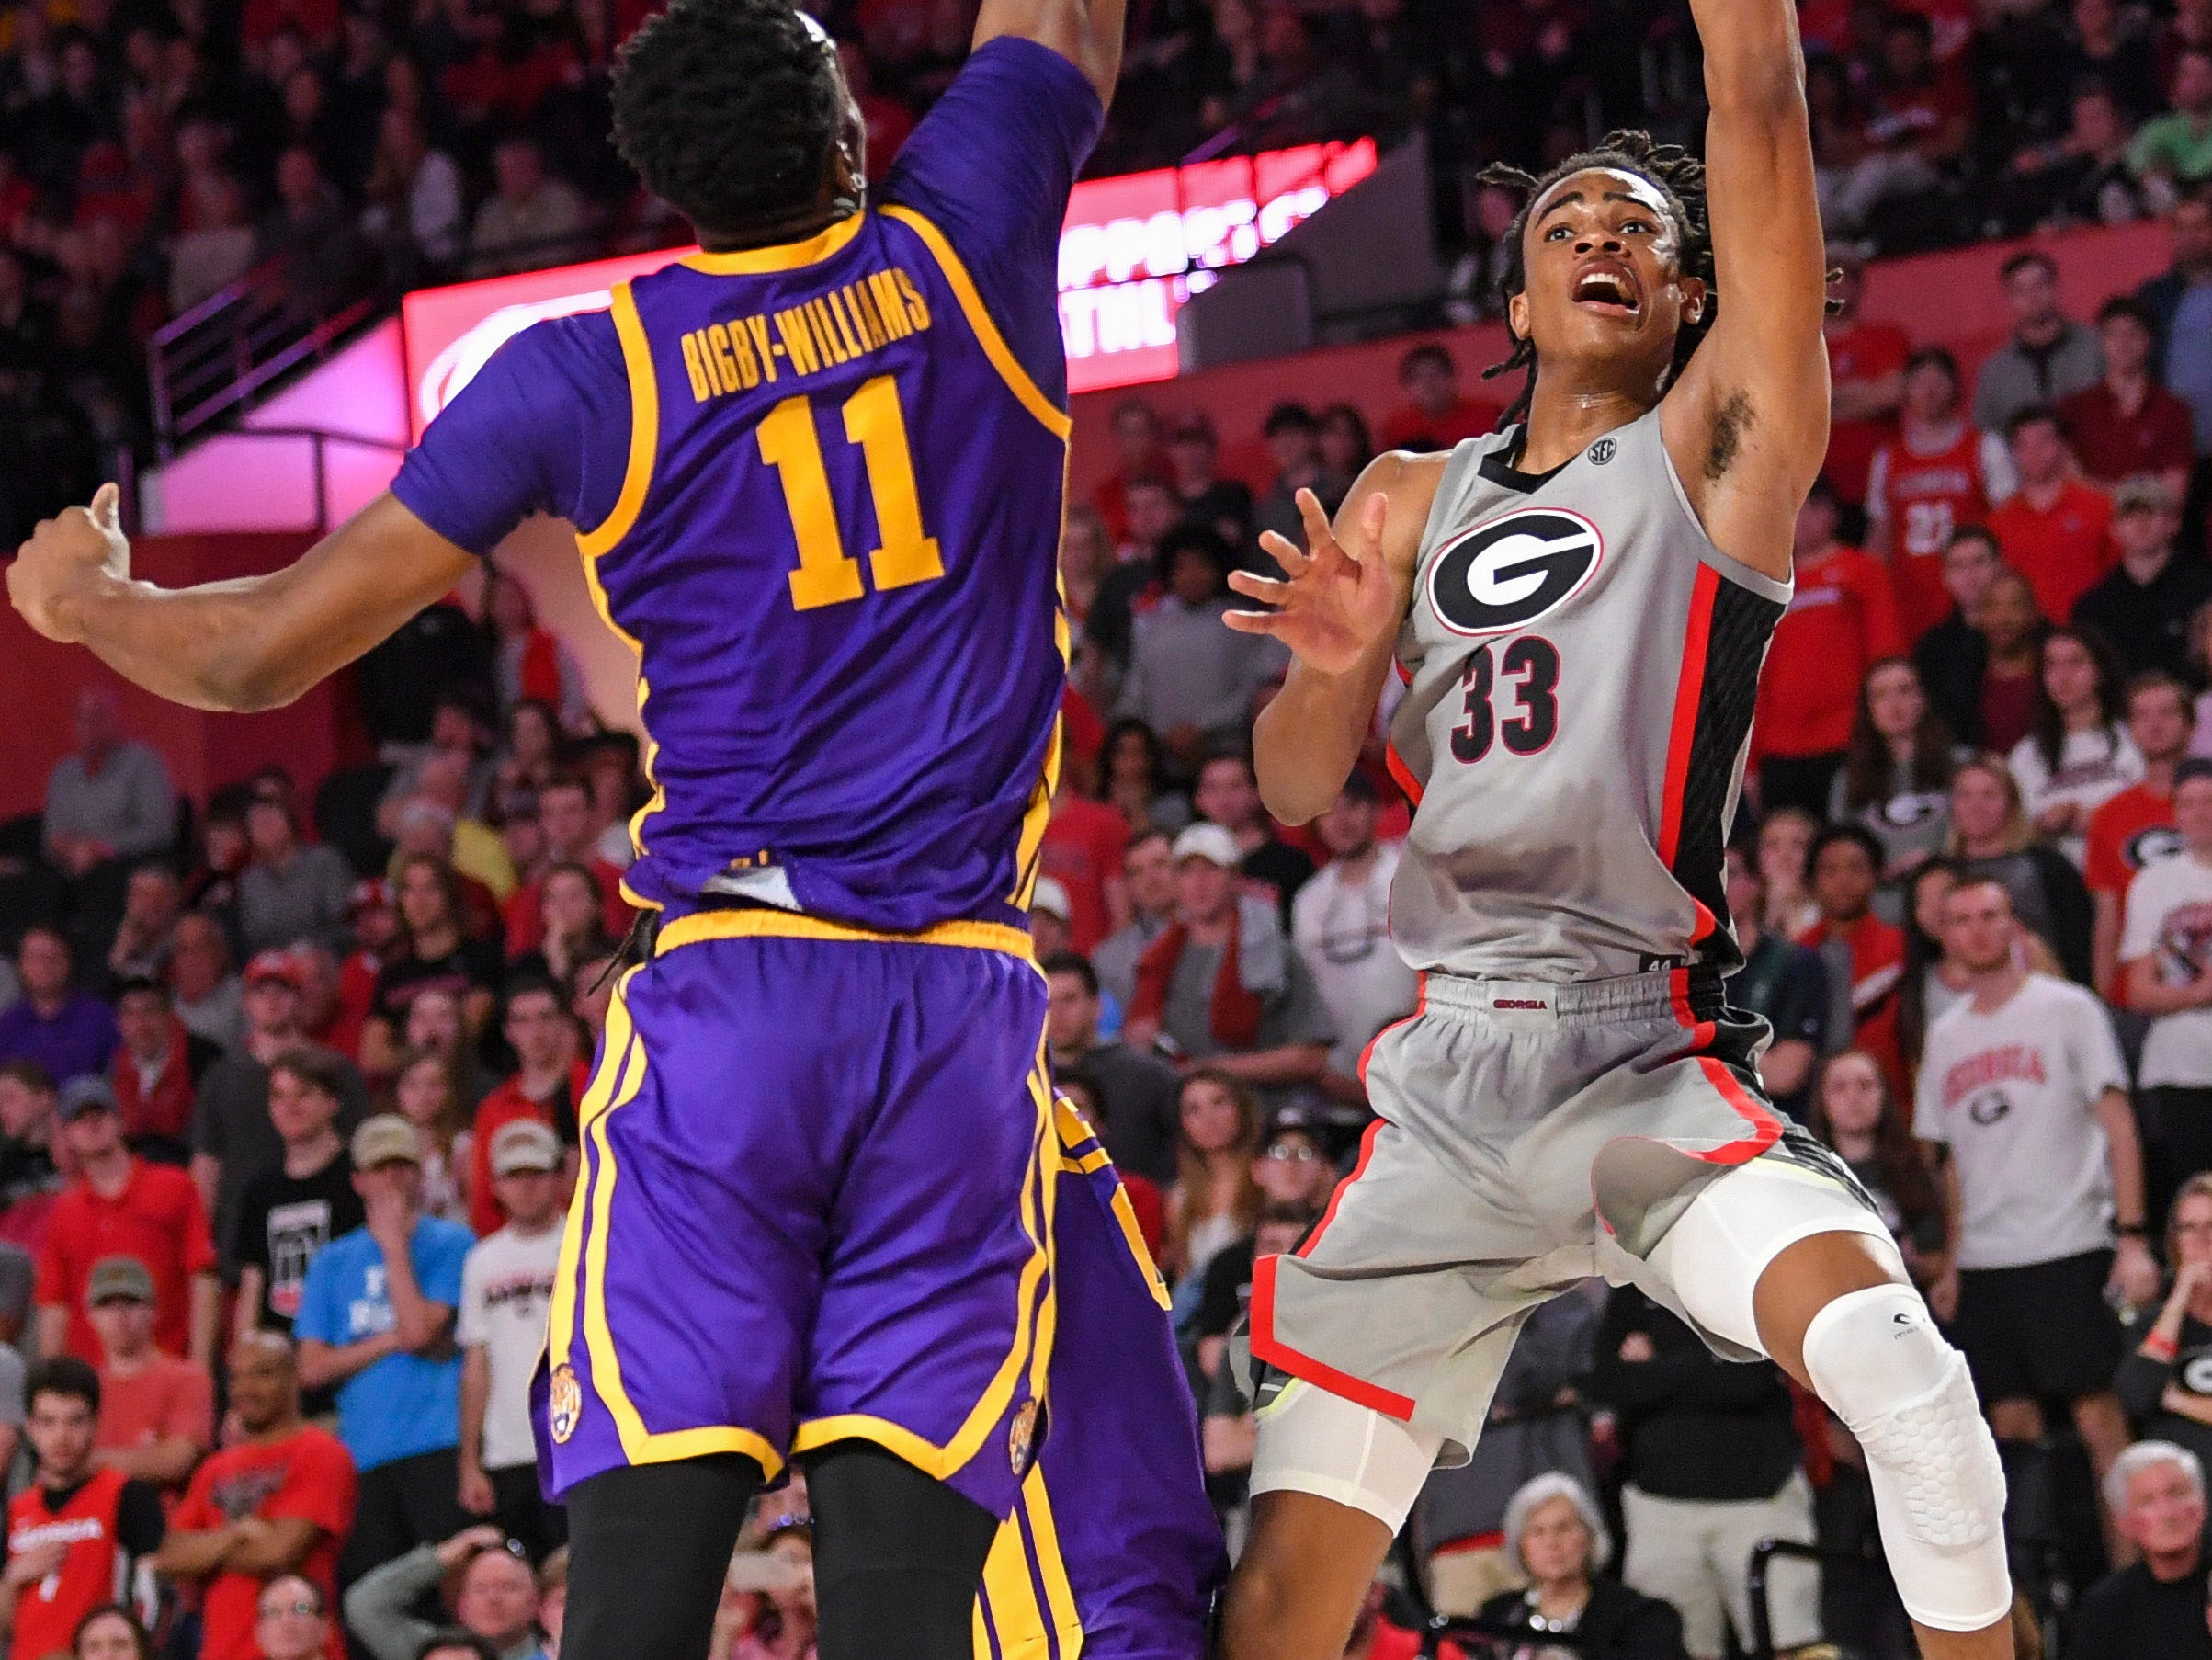 Feb 16, 2019; Athens, GA, USA; Georgia Bulldogs forward Nicolas Claxton (33) shoots over LSU Tigers forward Kavell Bigby-Williams (11) during the second half at Stegeman Coliseum. Mandatory Credit: Dale Zanine-USA TODAY Sports